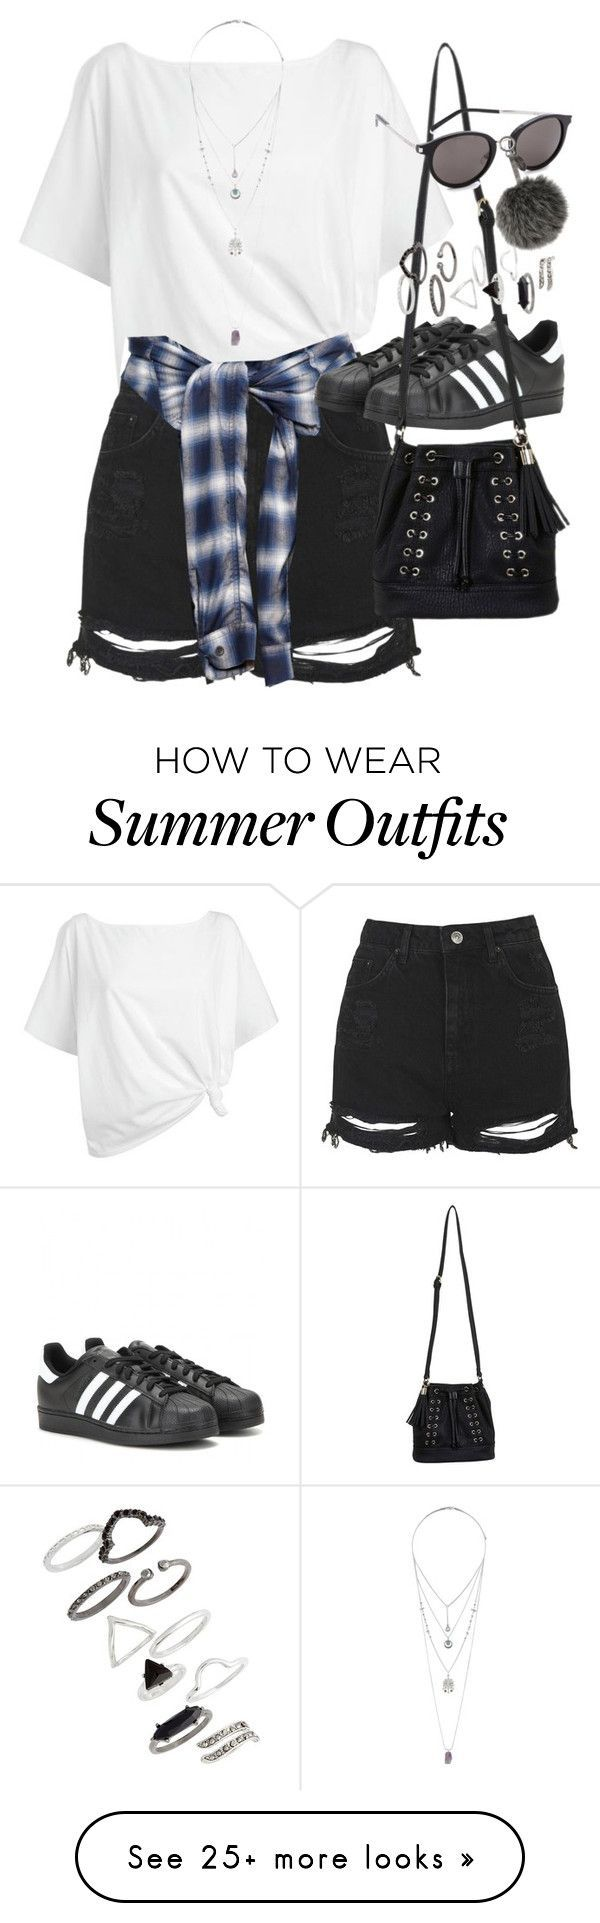 """""""Outfit for summer with sneakers"""" by ferned on Polyvore featuring Red Herring, Topshop, Miharayasuhiro, adidas, Miss Selfridge, Yves Saint Laurent and Fendi"""